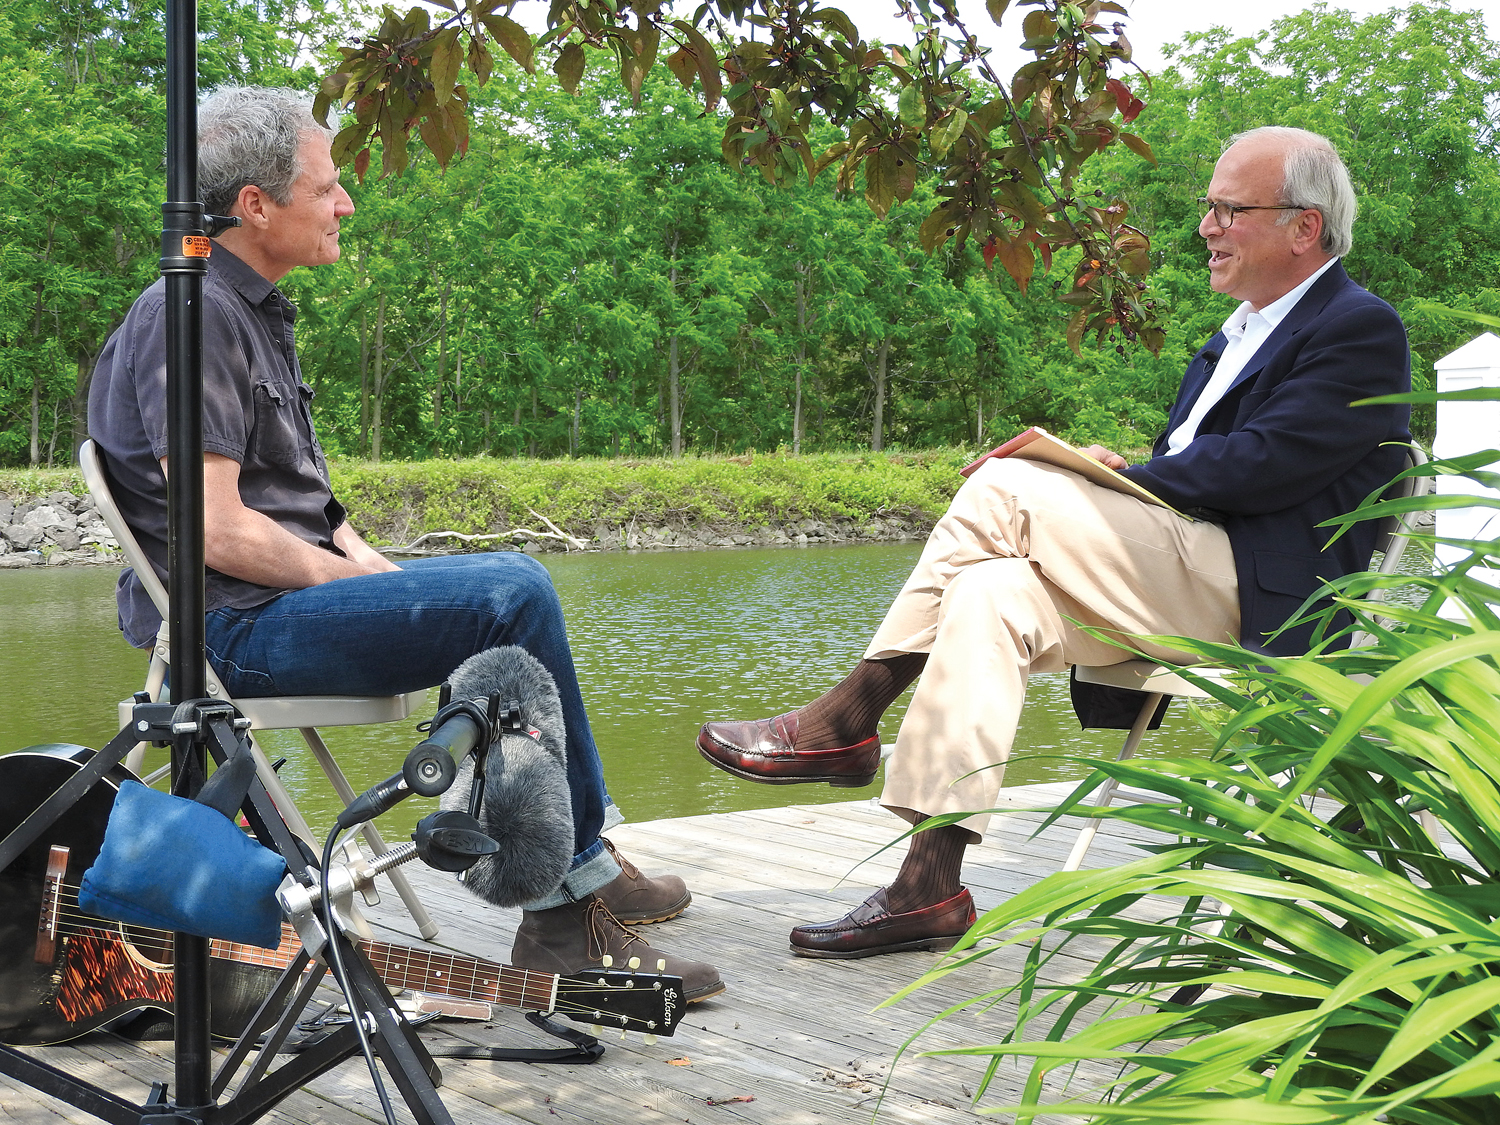 CBS Sunday Morning correspondent Richard Schlesinger (right) interviewing Dave Ruch at the Spencerport Depot and Canal Museum.